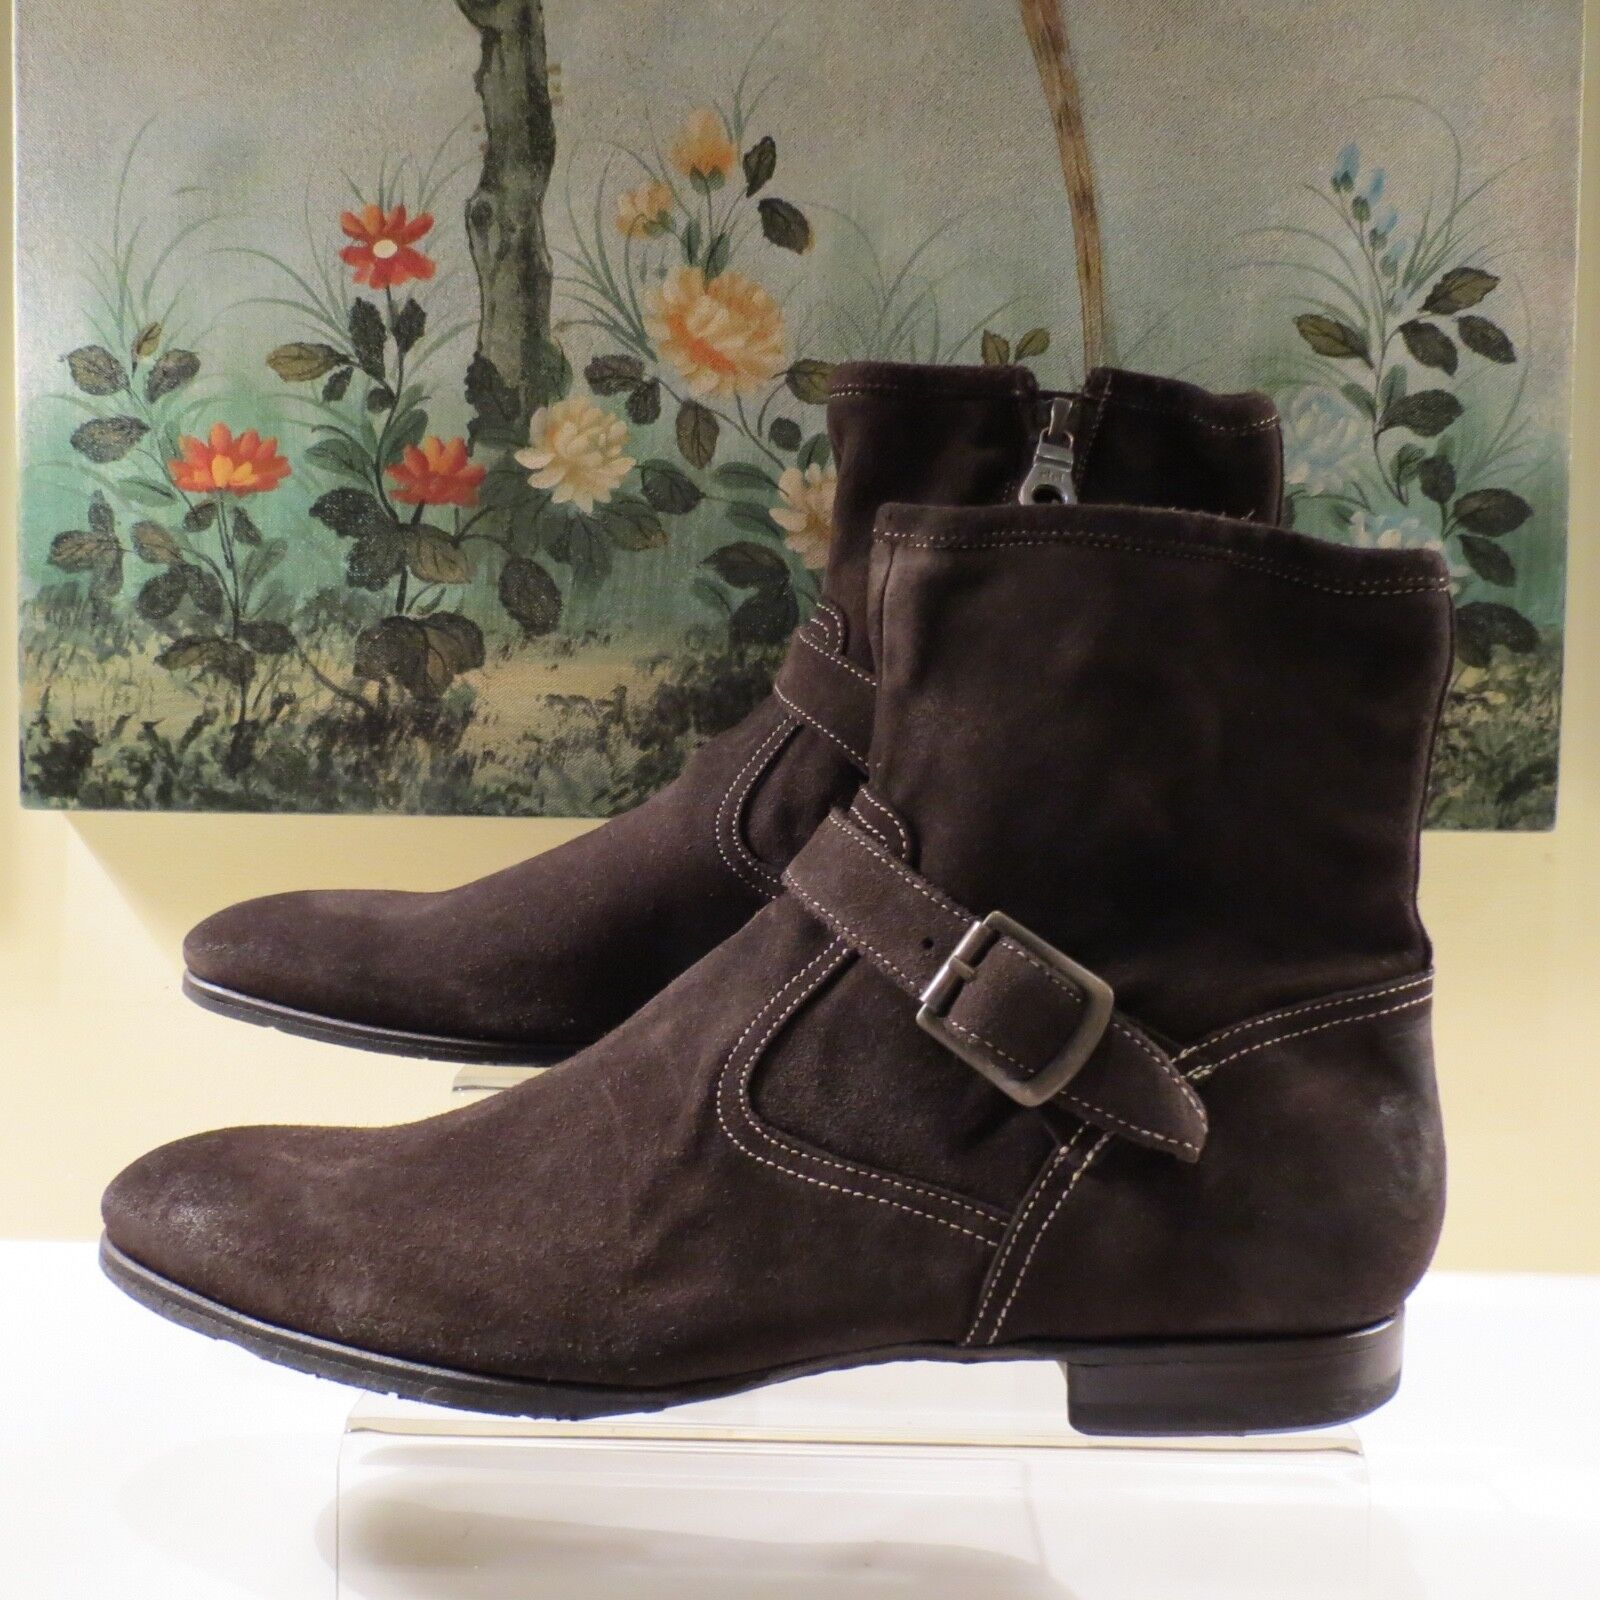 NWB WOMEN AUTH PAUL SMITH CARSON SIGARO DIP DYE BROWN SUEDE ANKLE ZIP BOOT 41 11